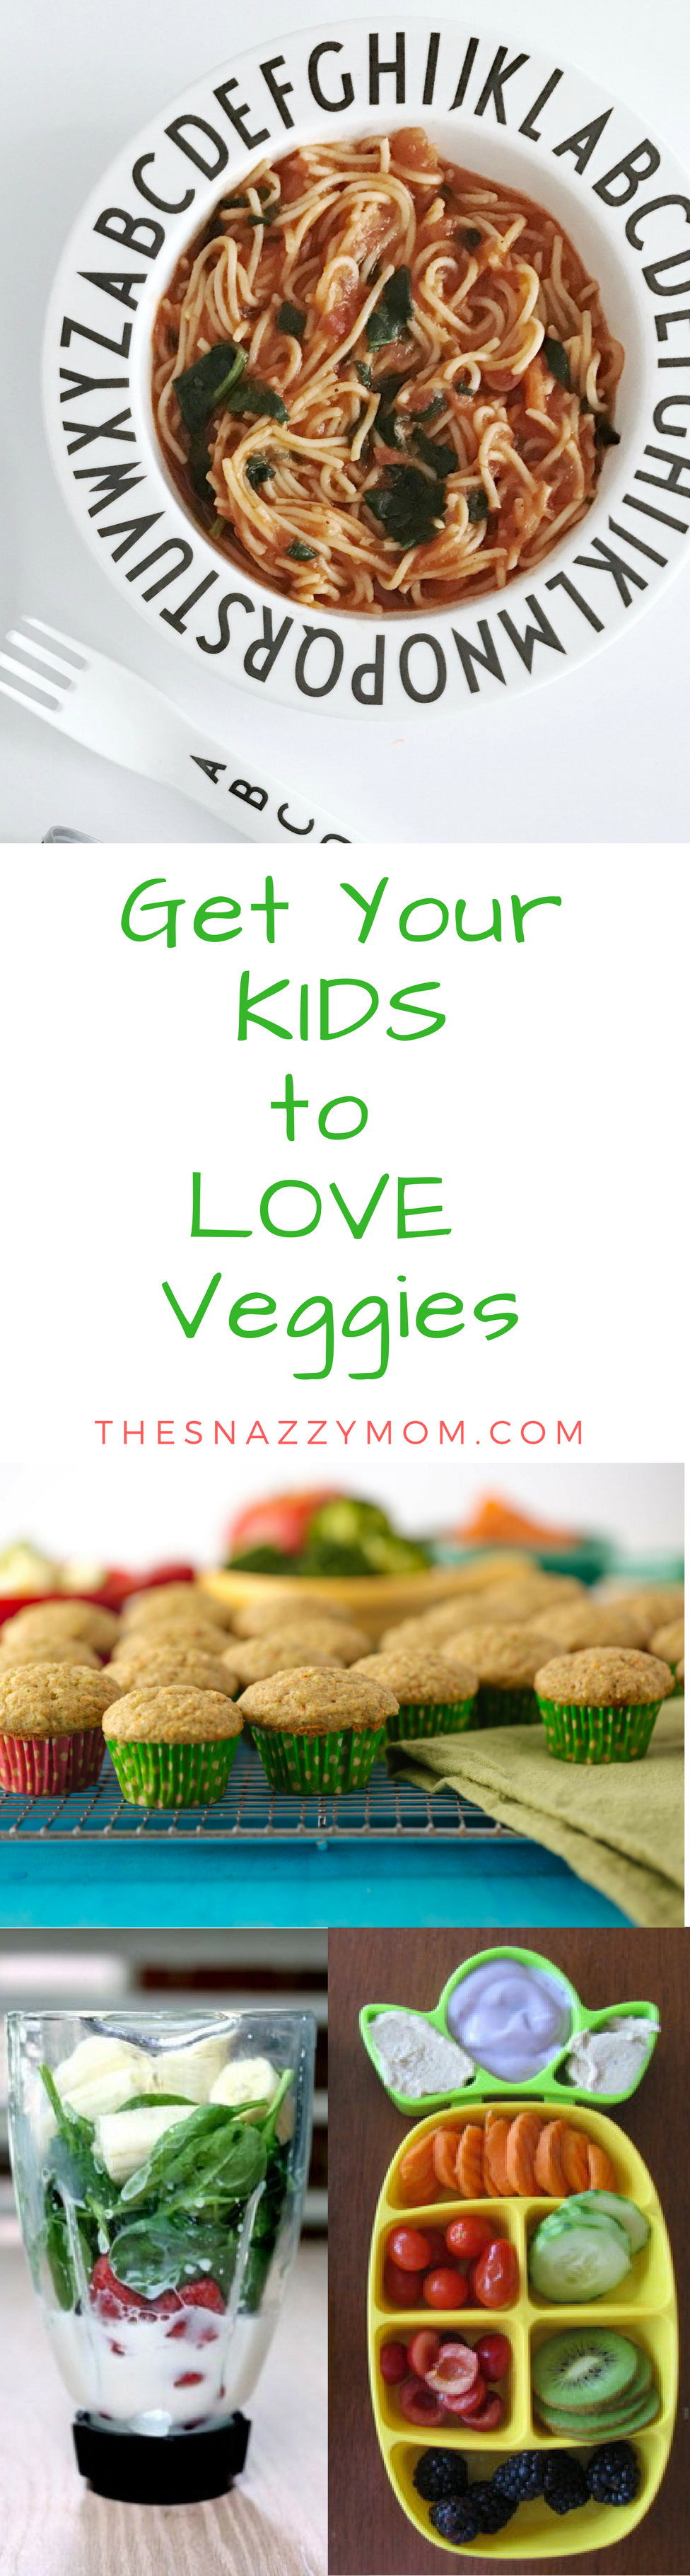 Get Your KIDSto LOVE Veggies (1)